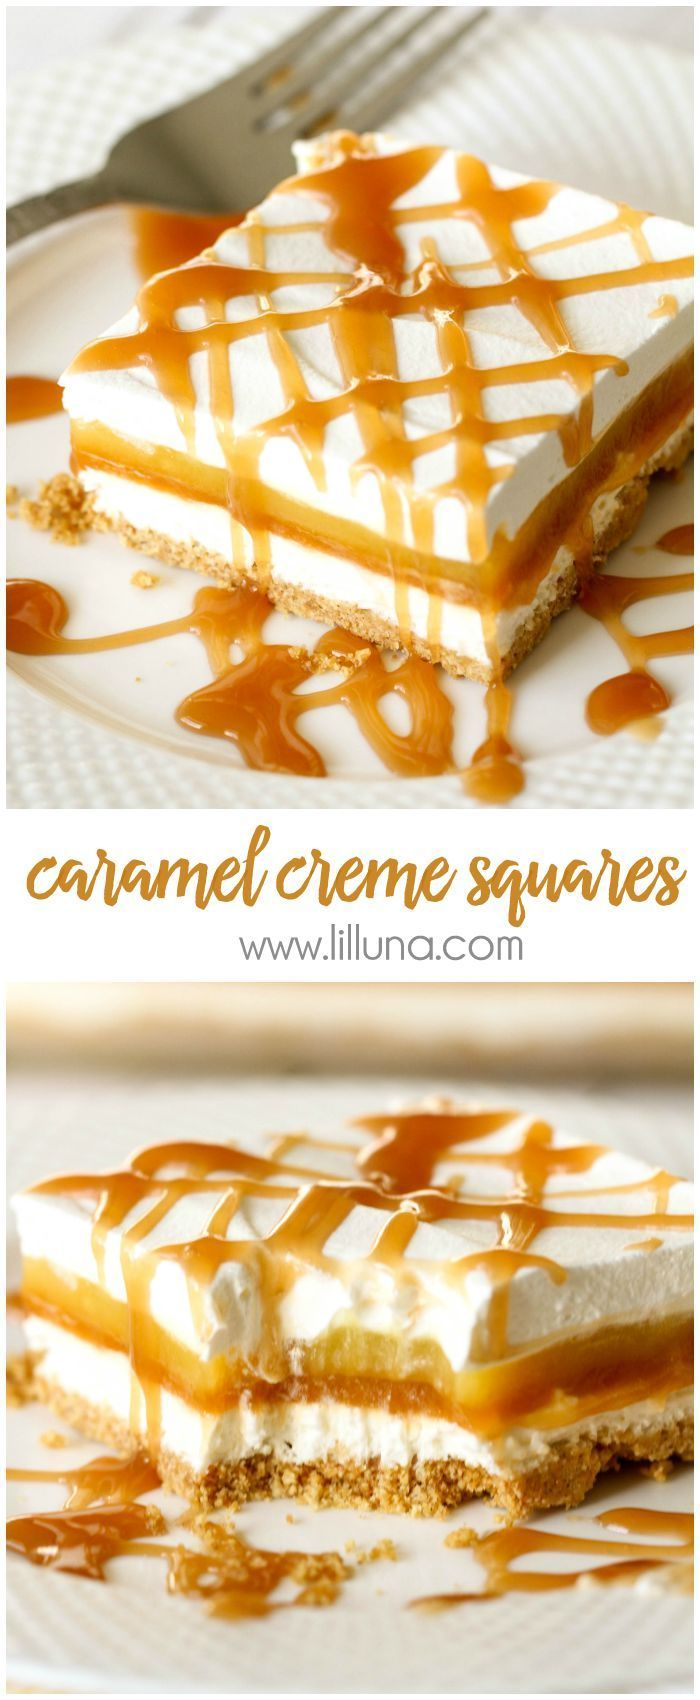 Caramel Creme Squares - 5 delicious layers including graham cracker crumbs, cream cheese, butterscotch and vanilla pudding and topped with Cool Whip and caramel! YUM!! Recipe on { lilluna.com }